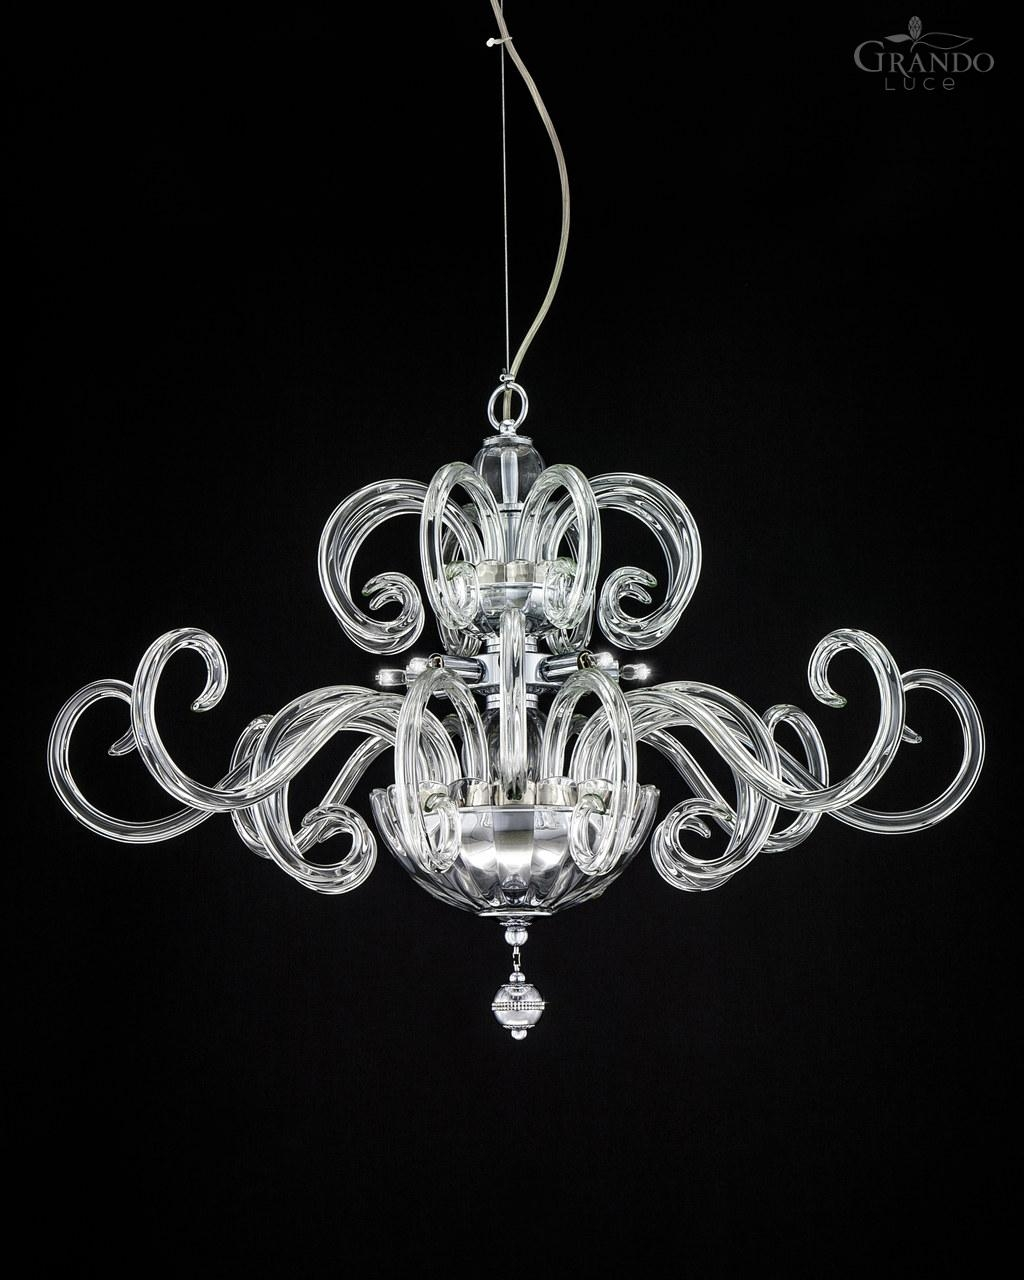 119sm Chrome Modern Crystal Chandelier With Swarovski Elements In Crystal Chrome Chandelier (View 9 of 15)